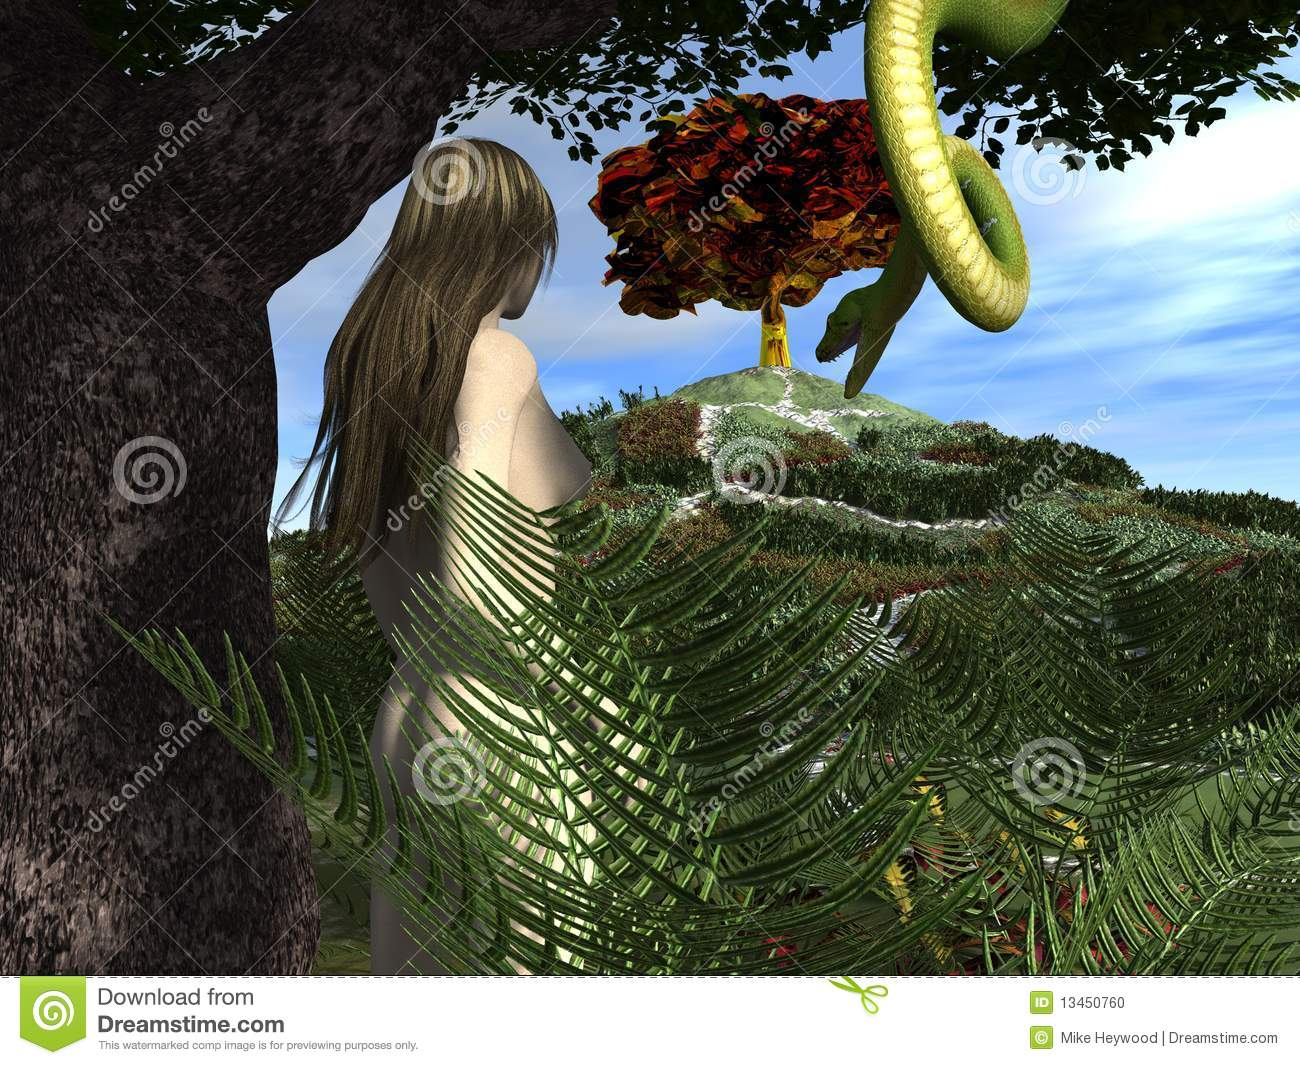 Serpent Tempts Eve In The Garden Of Eden Stock Photo Image 13450760